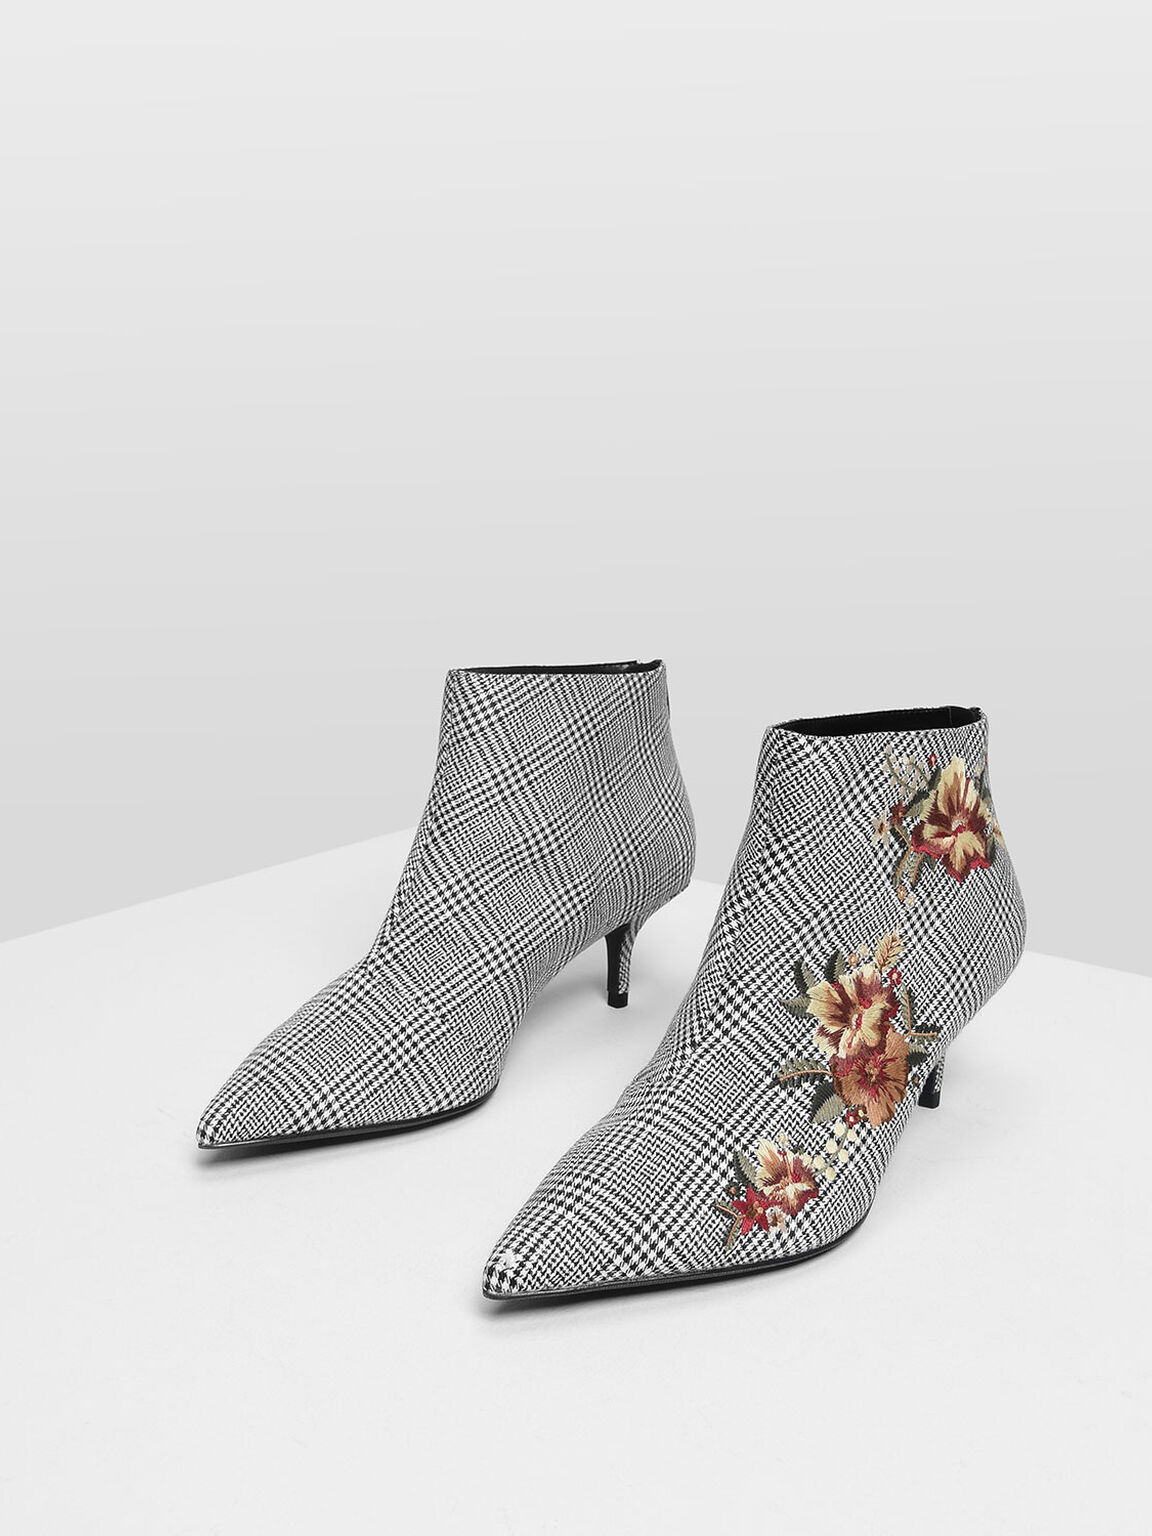 Floral Embroidery Kitten Heel Boots, Multi, hi-res